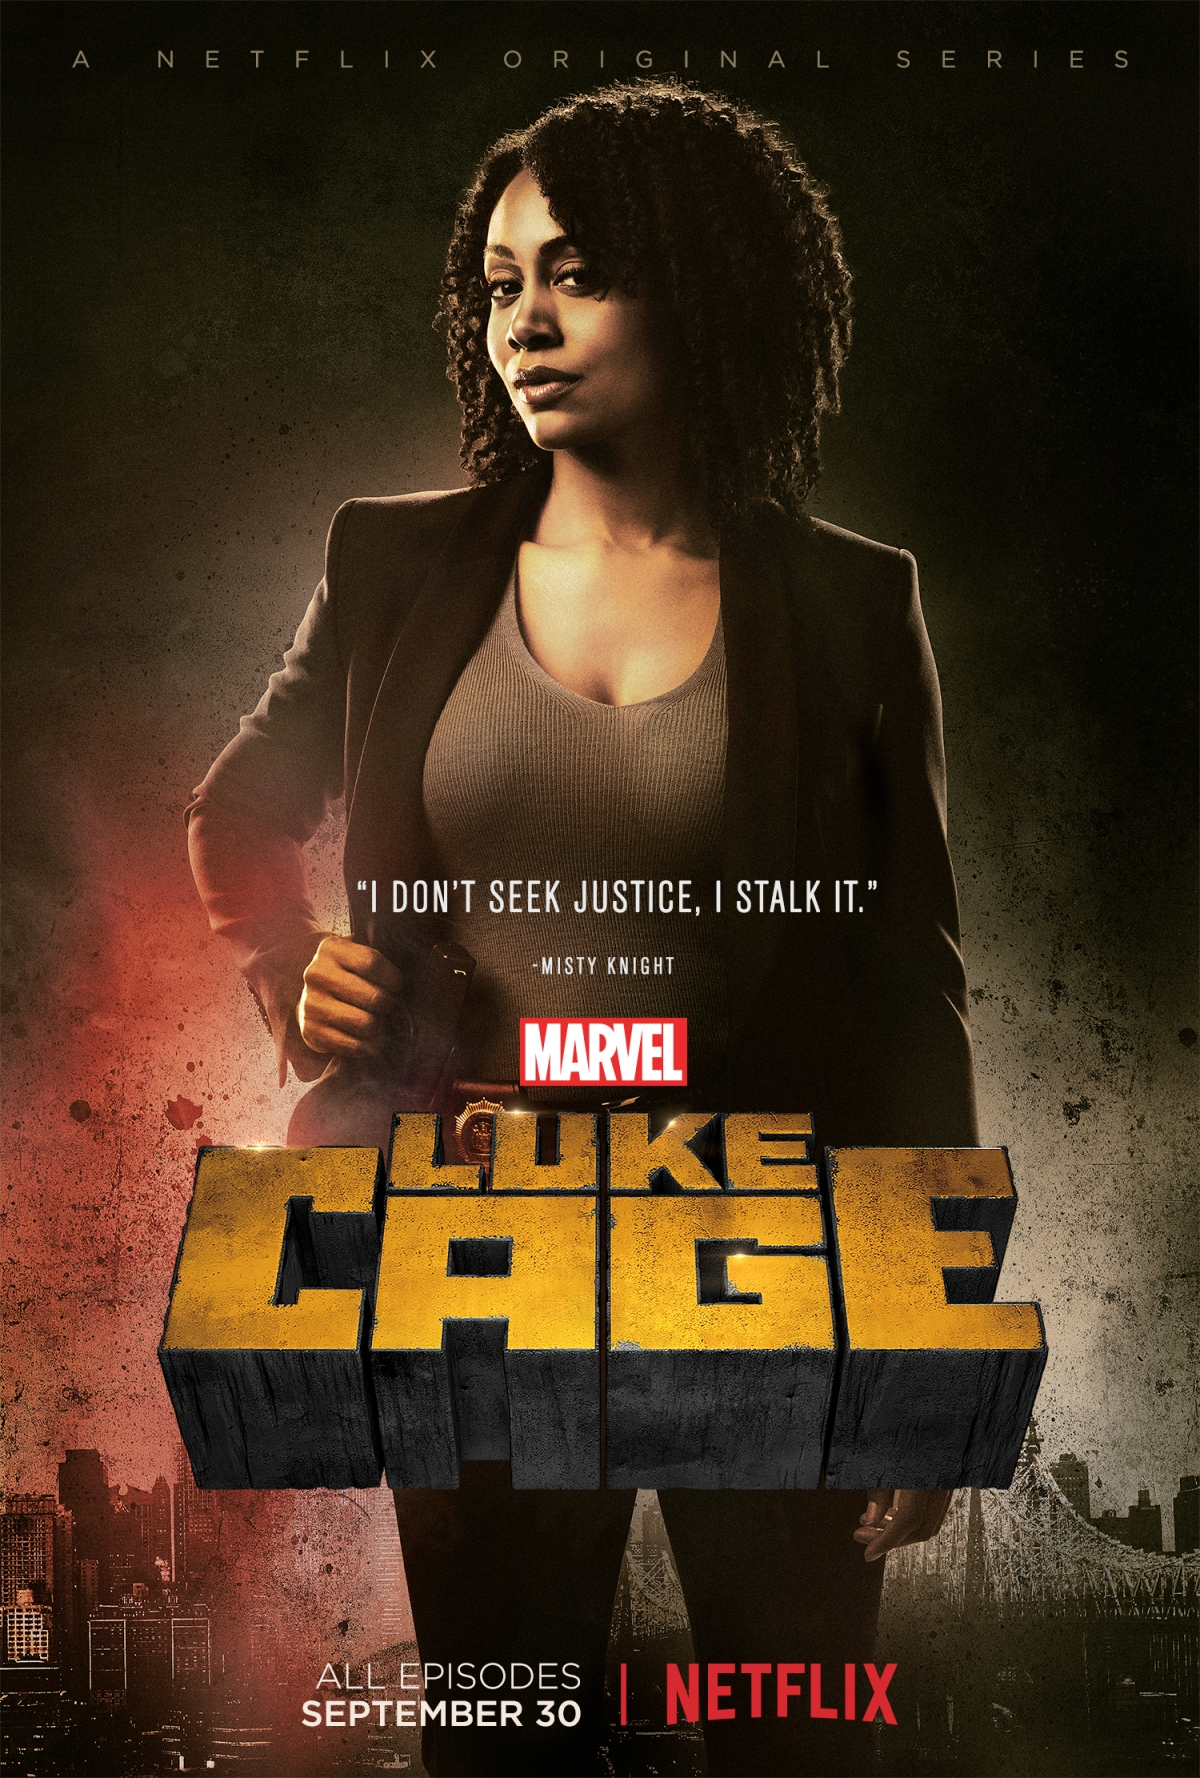 simone-cookas-misty-knight-in-luke-cage.jpeg